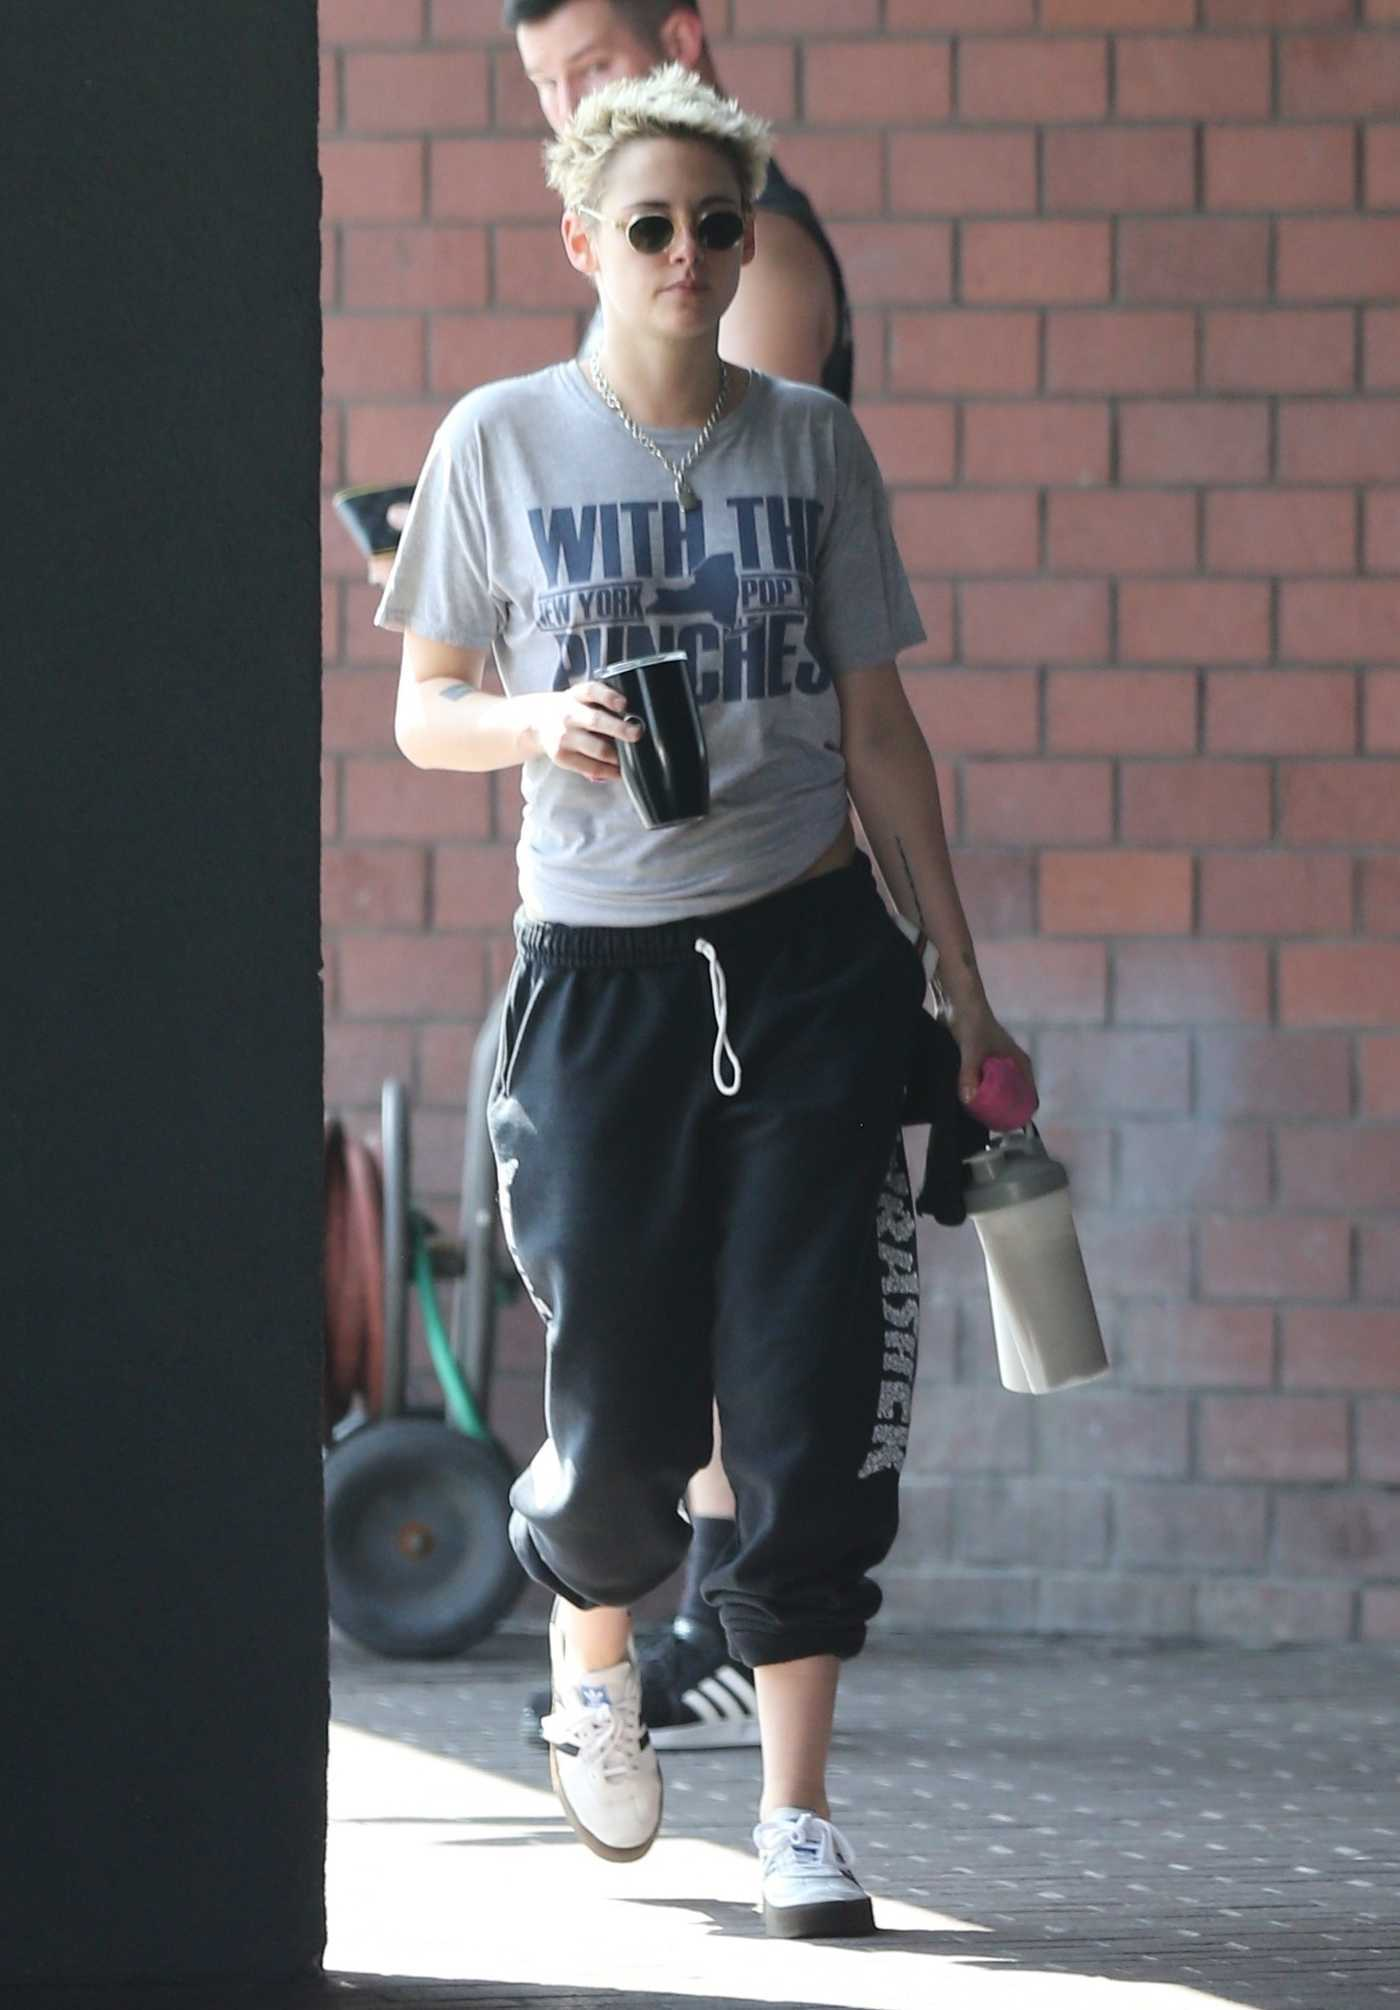 Kristen Stewart in a Dark Blue Sweatpants Leaves a Karate Class in Hollywood 08/17/2018